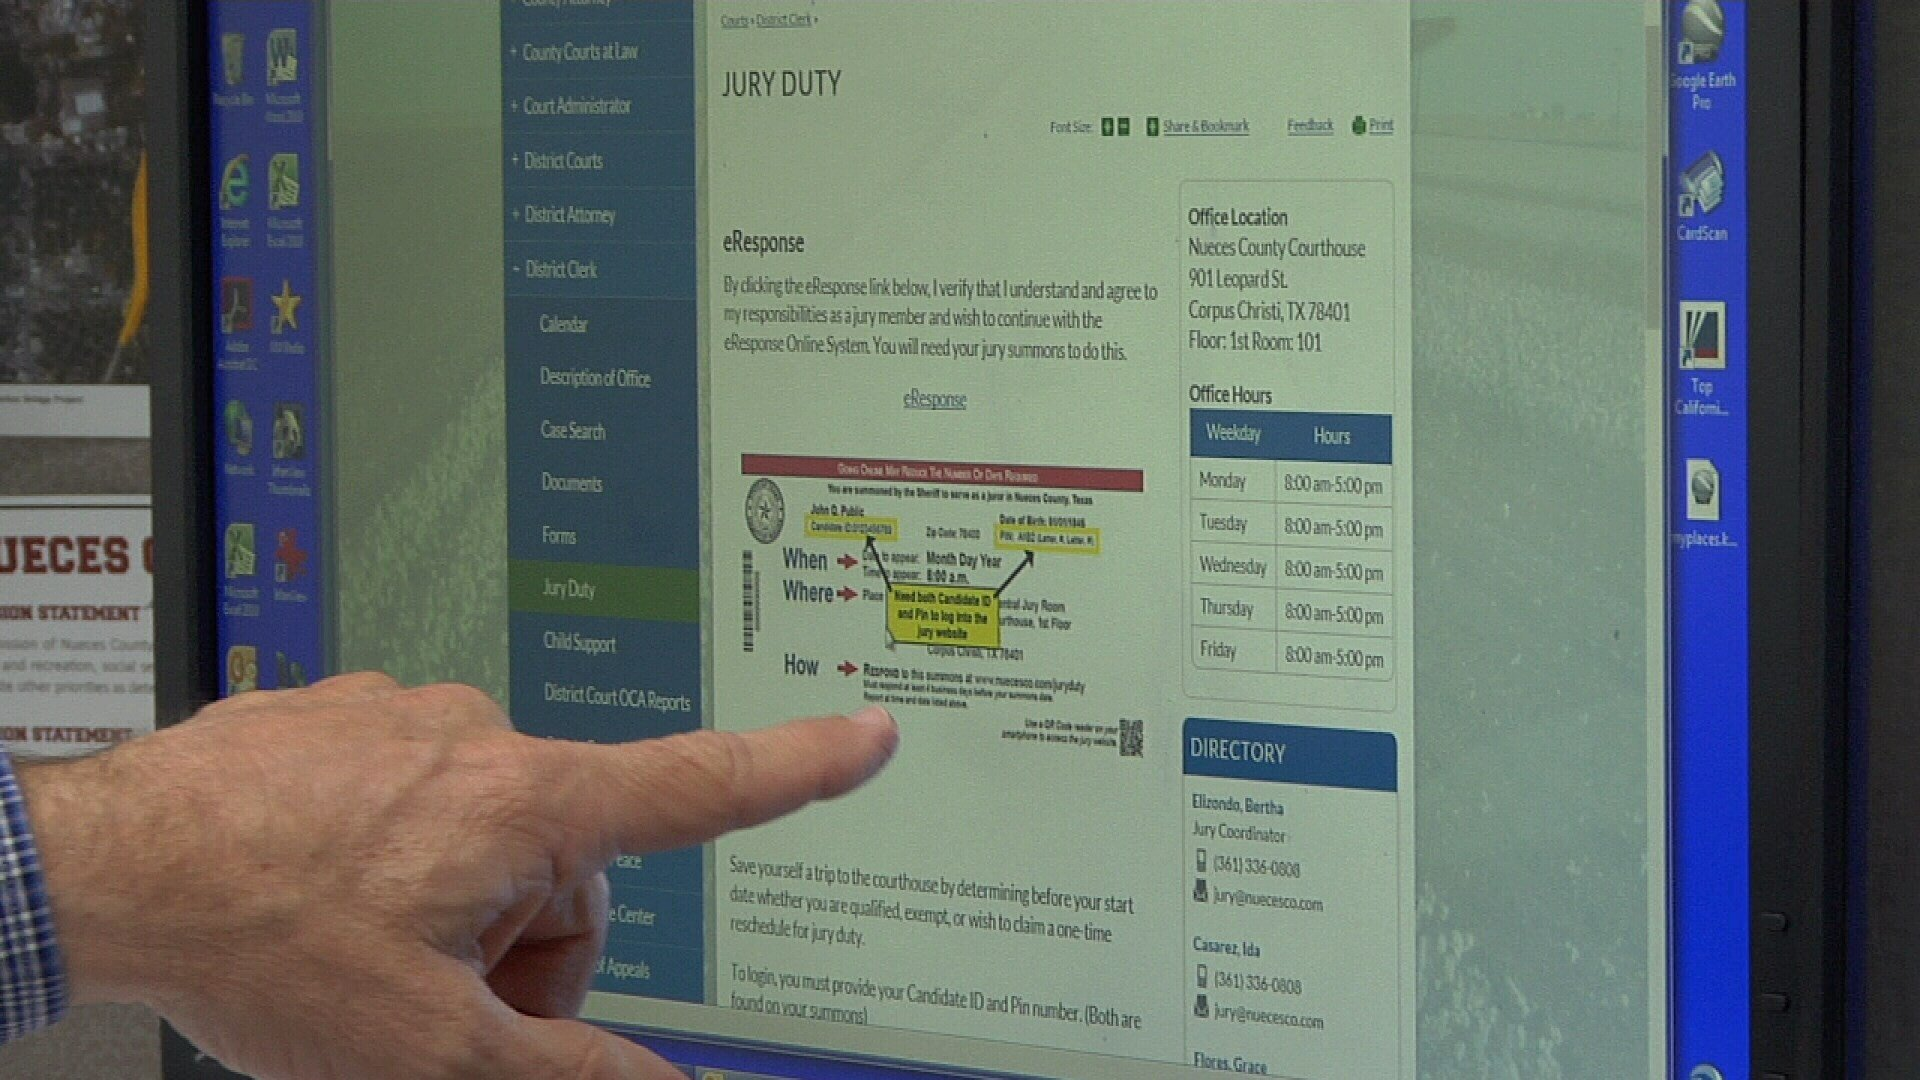 A new report show's the county's online jury selection system not only makes jury selection simpler, it also saves the county hundreds of thousands of dollars.